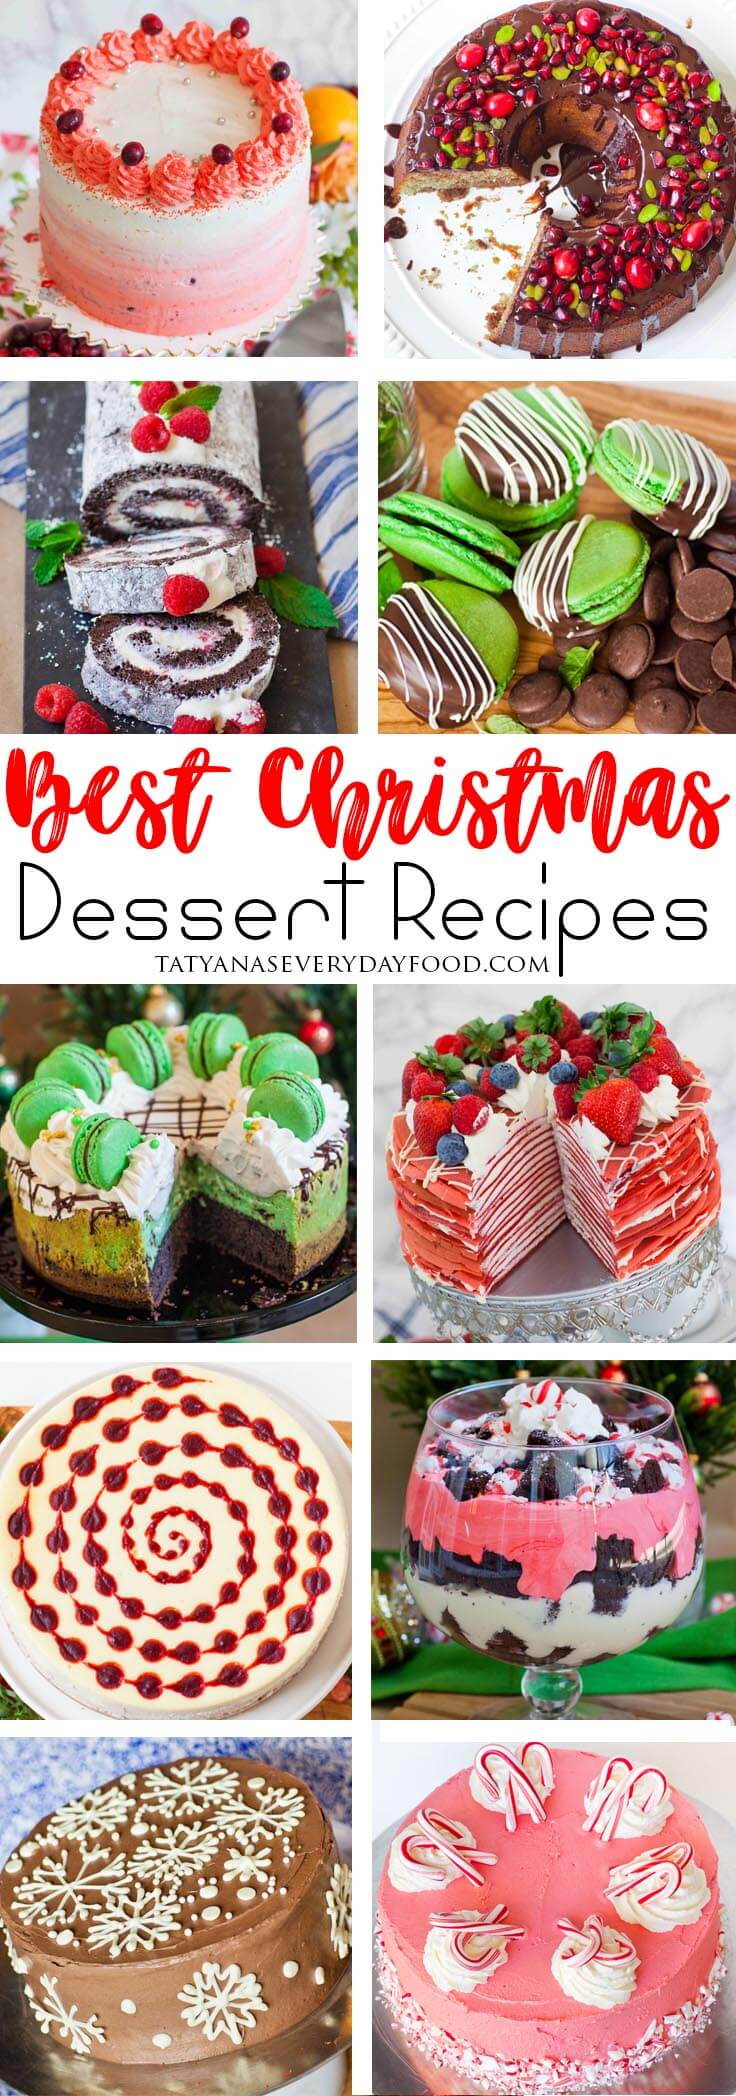 Christmas Desserts Recipe Roundup